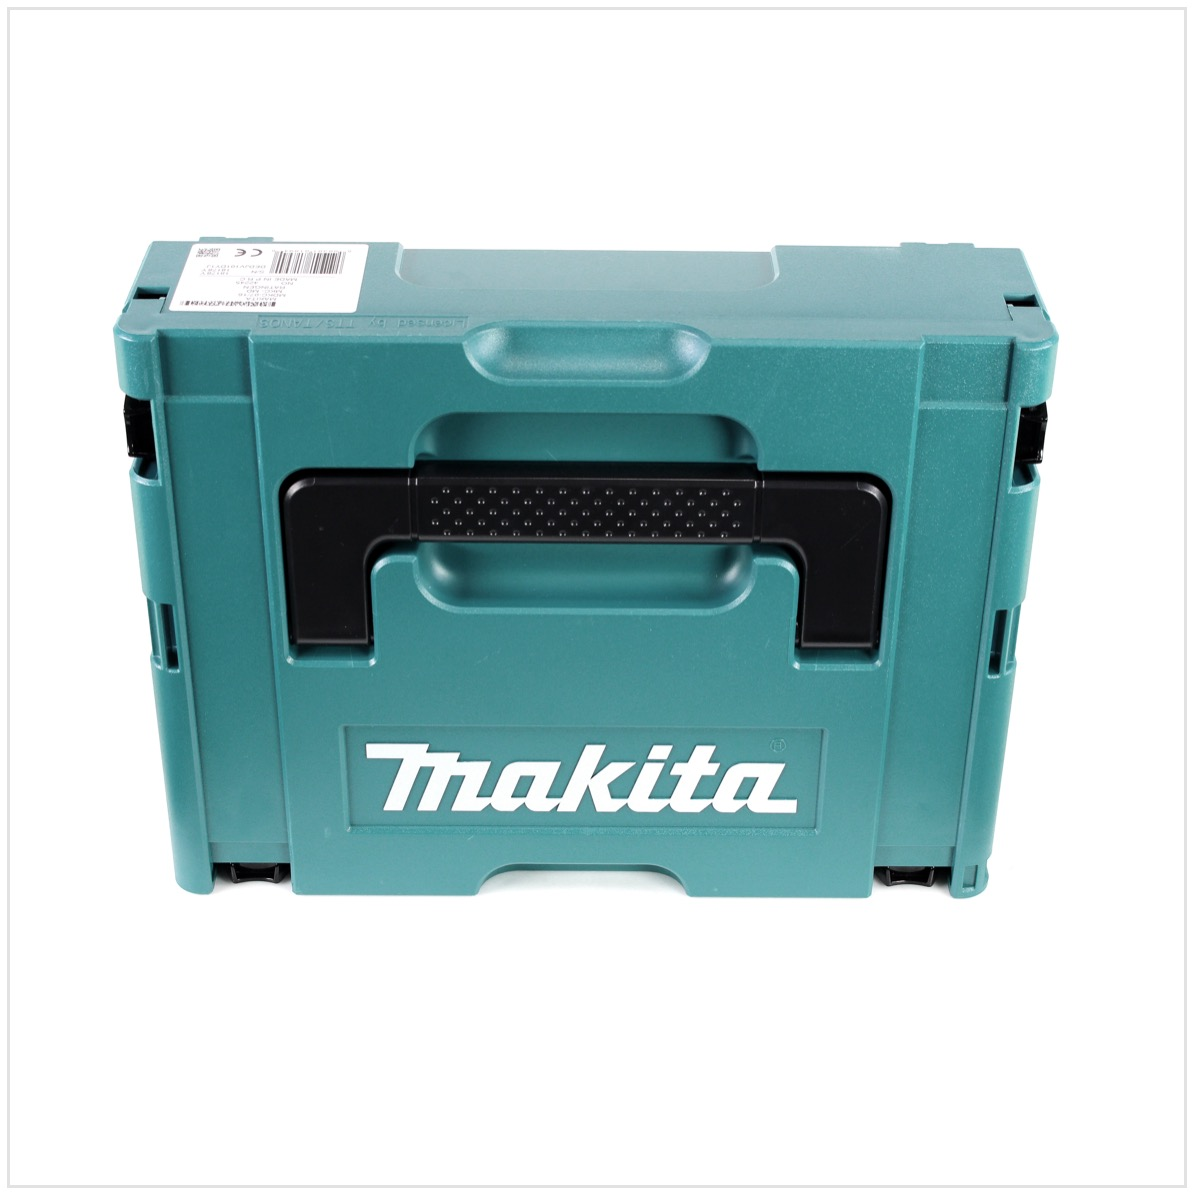 makita jr 103 dzj 10 8 v akku s bel recipros ge solo im makpac 1 systemkoffer ebay. Black Bedroom Furniture Sets. Home Design Ideas